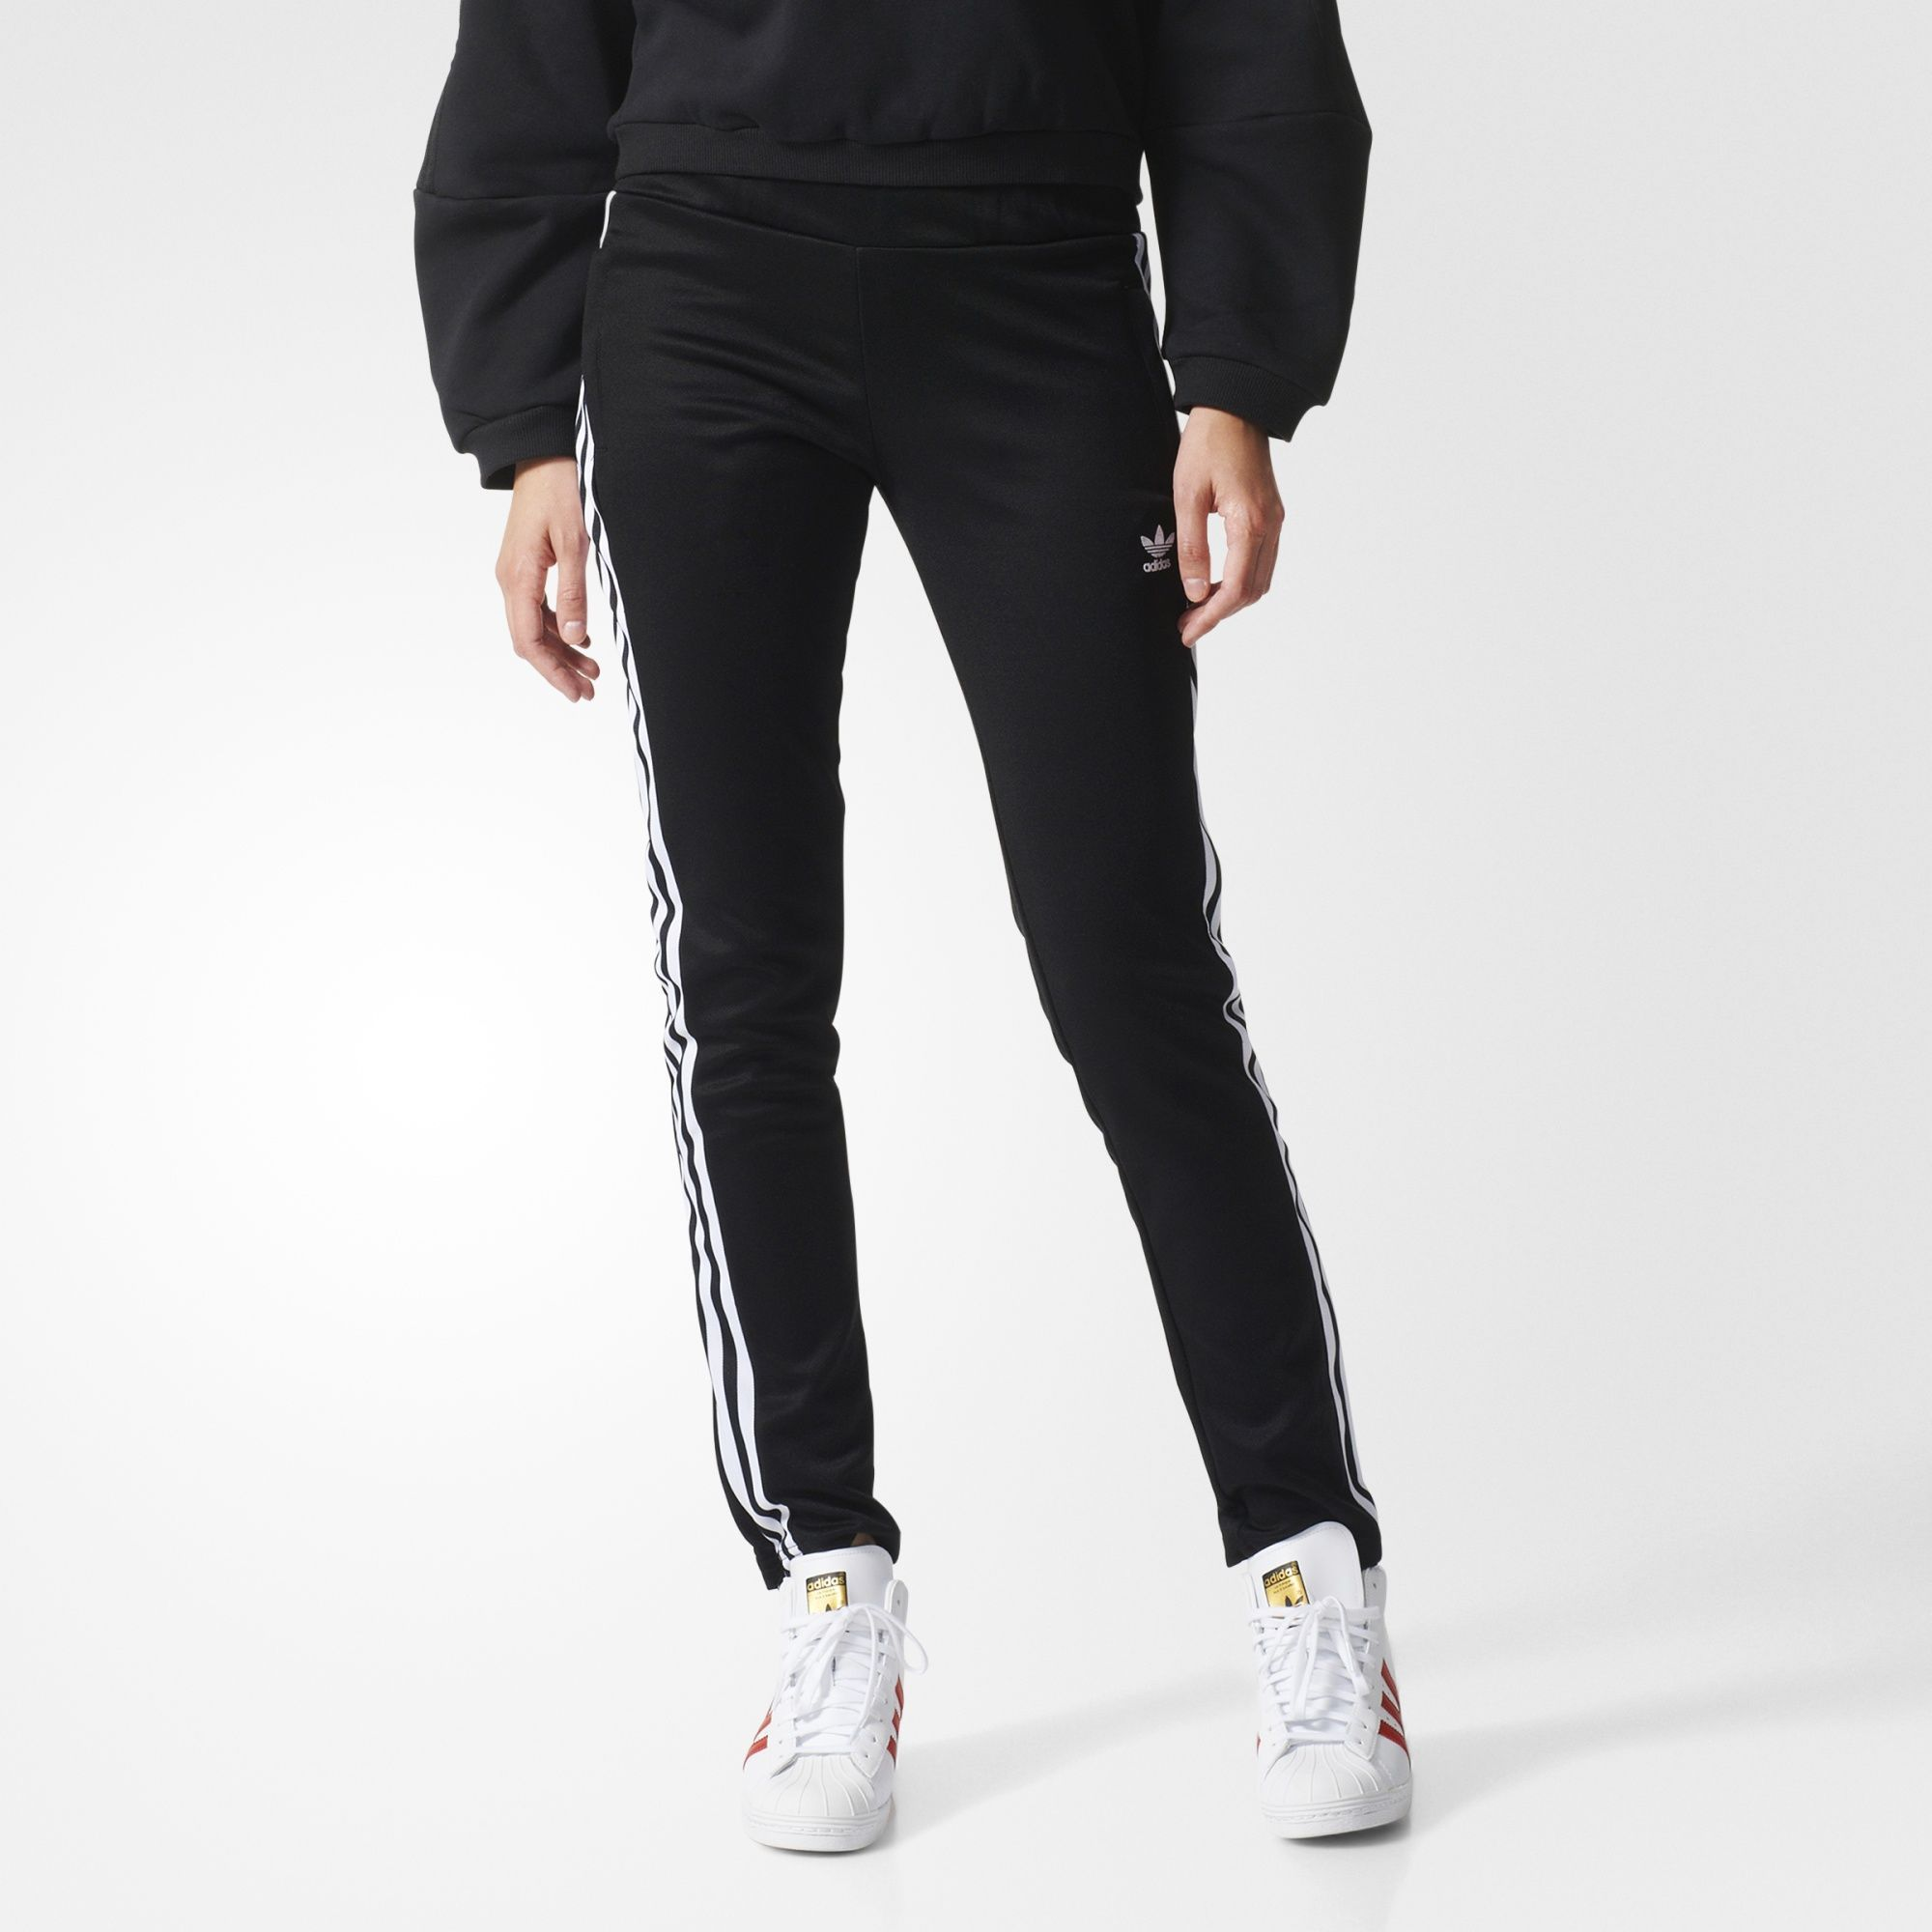 108257aede5 adidas - EUROPA TP | currently | Trousers women, Adidas, Clothes for ...